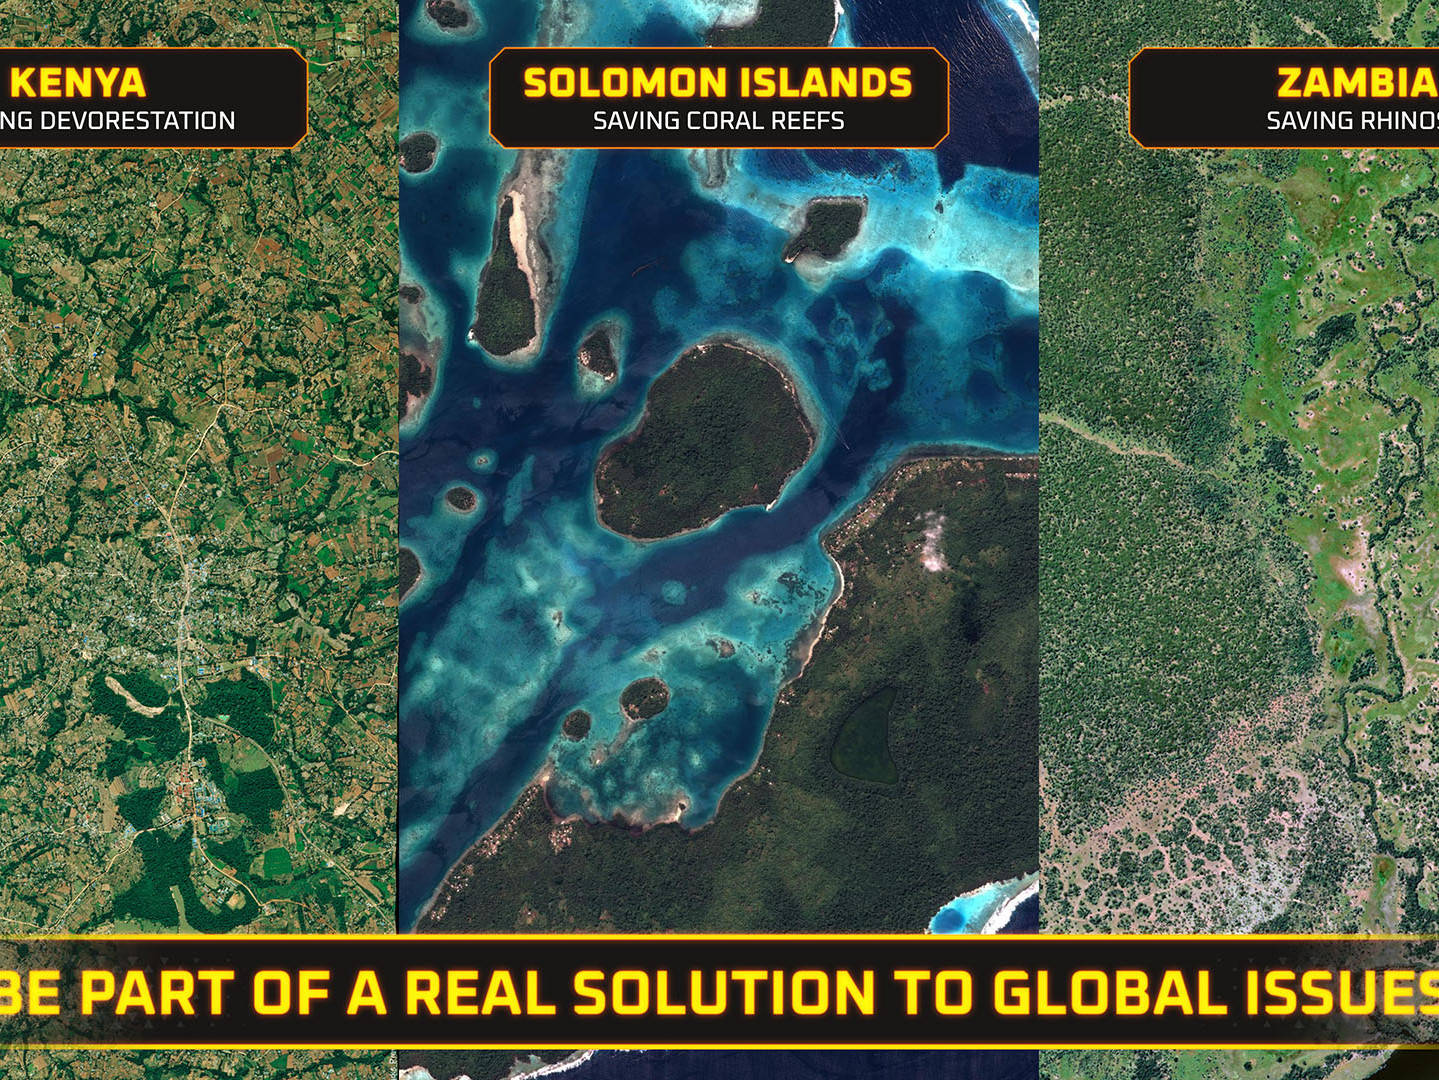 Be part of a real solution to global issues